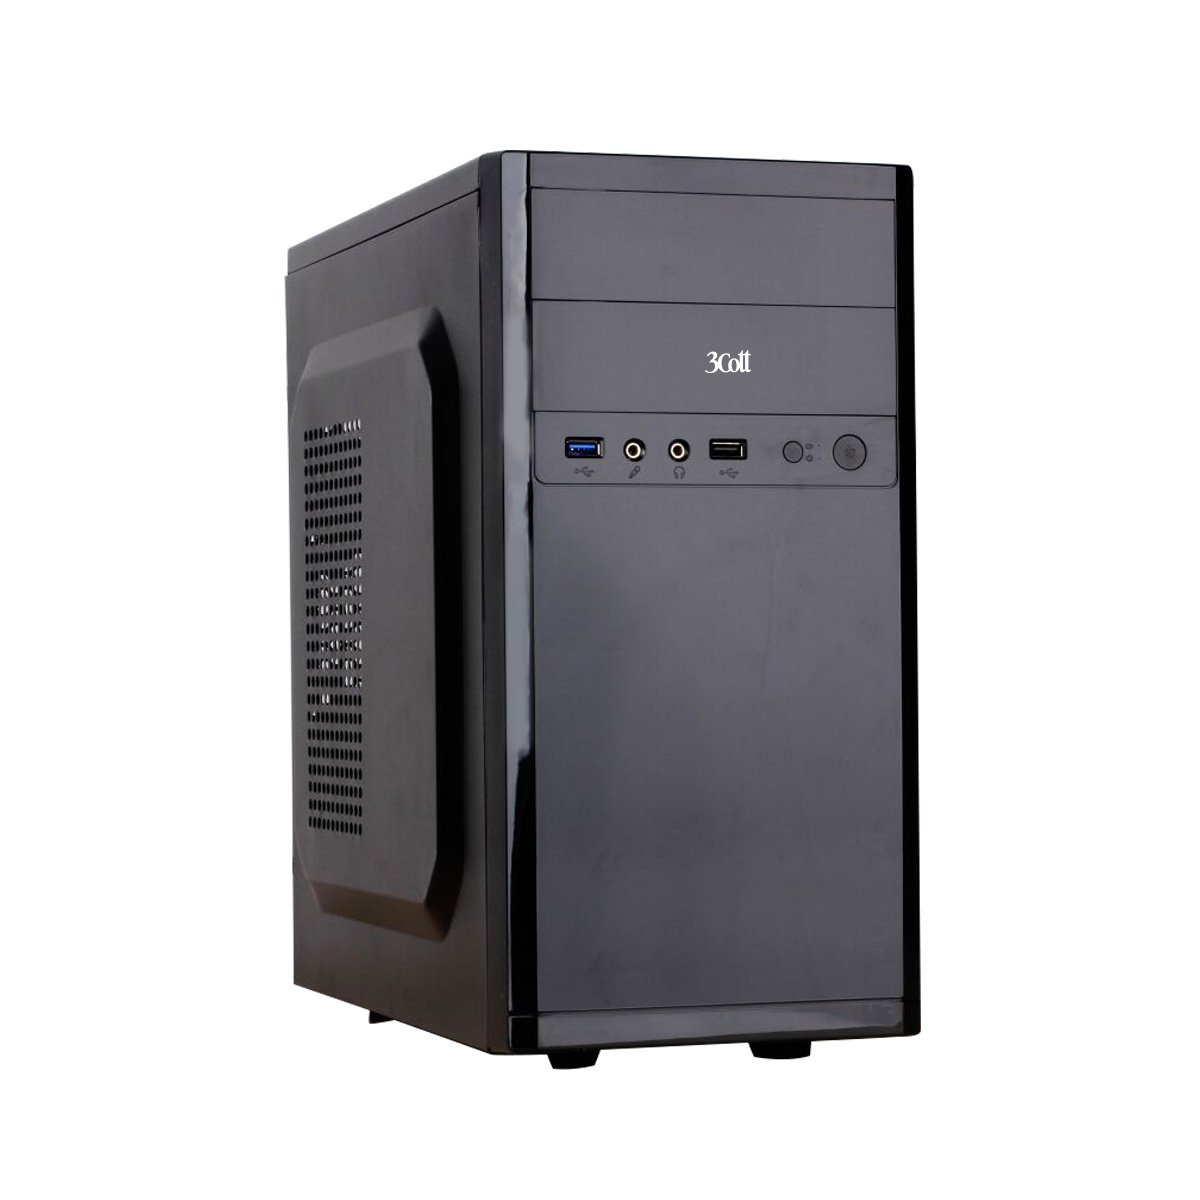 Компьютер Office 106 AMD A4 6300/2Gb/500Gb/D-Sub+Digital amd a4 6300 dual core cpu